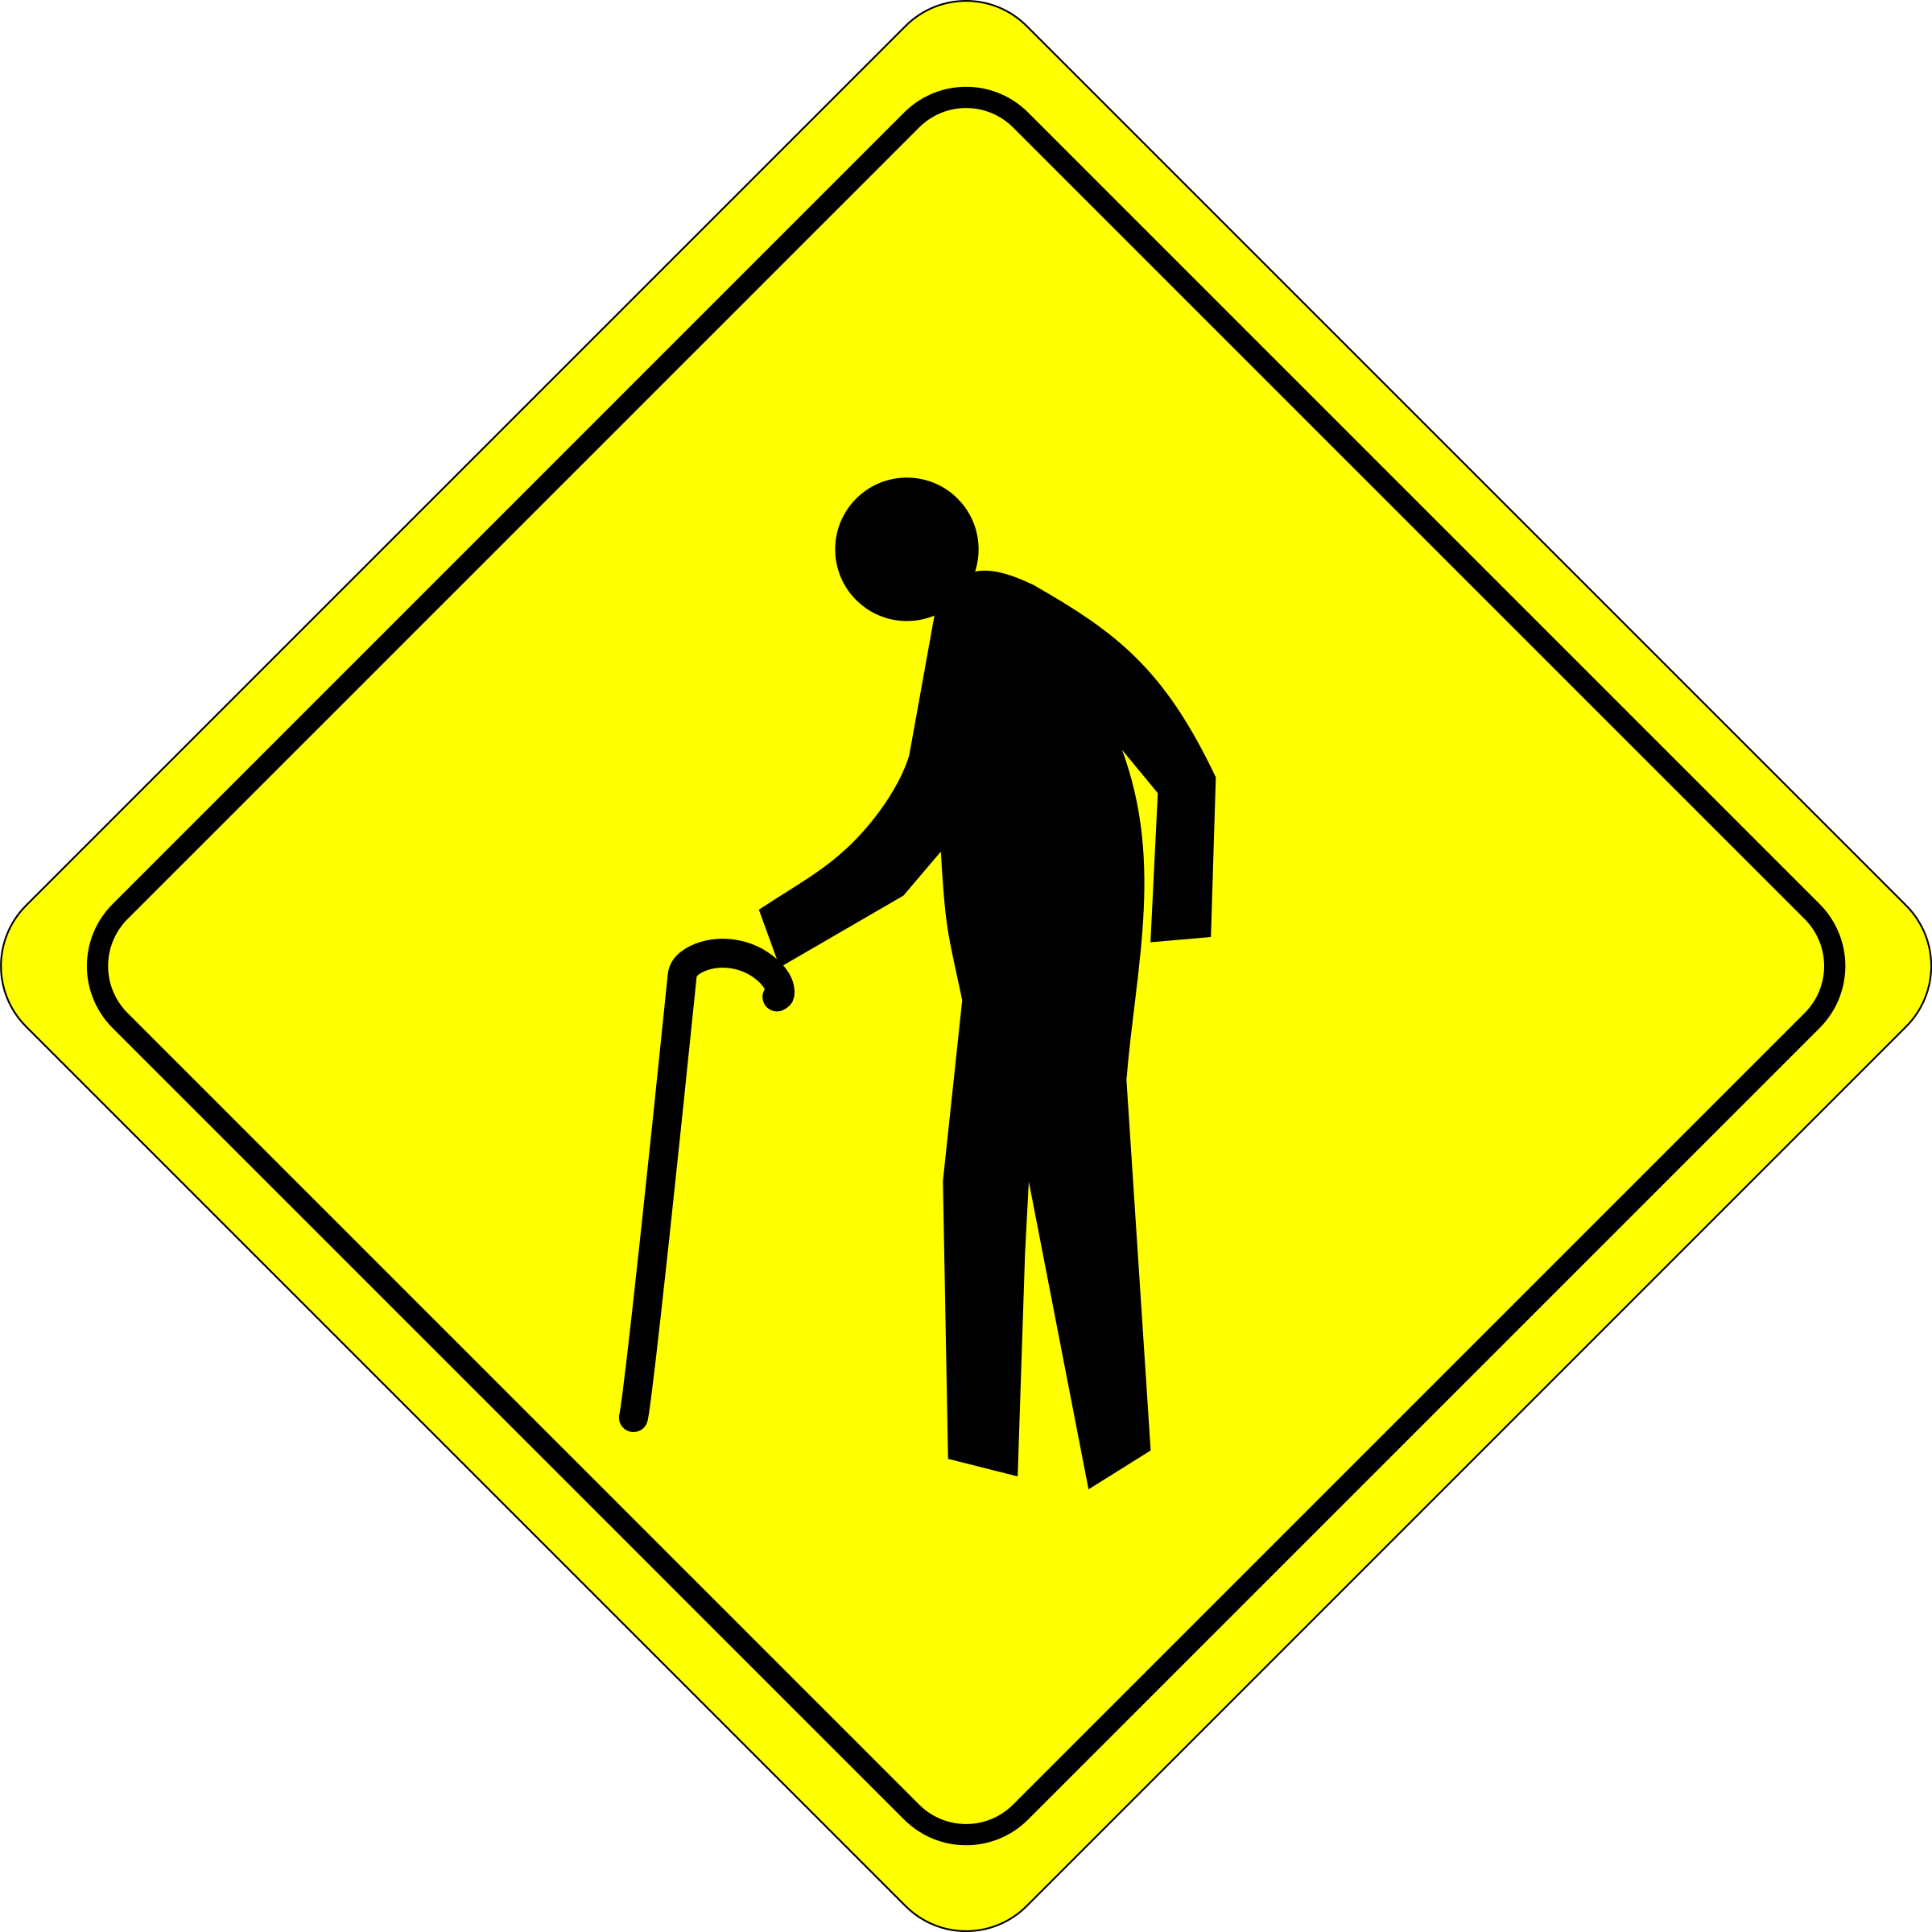 Caution - Old Dude Crossing by algotruneman